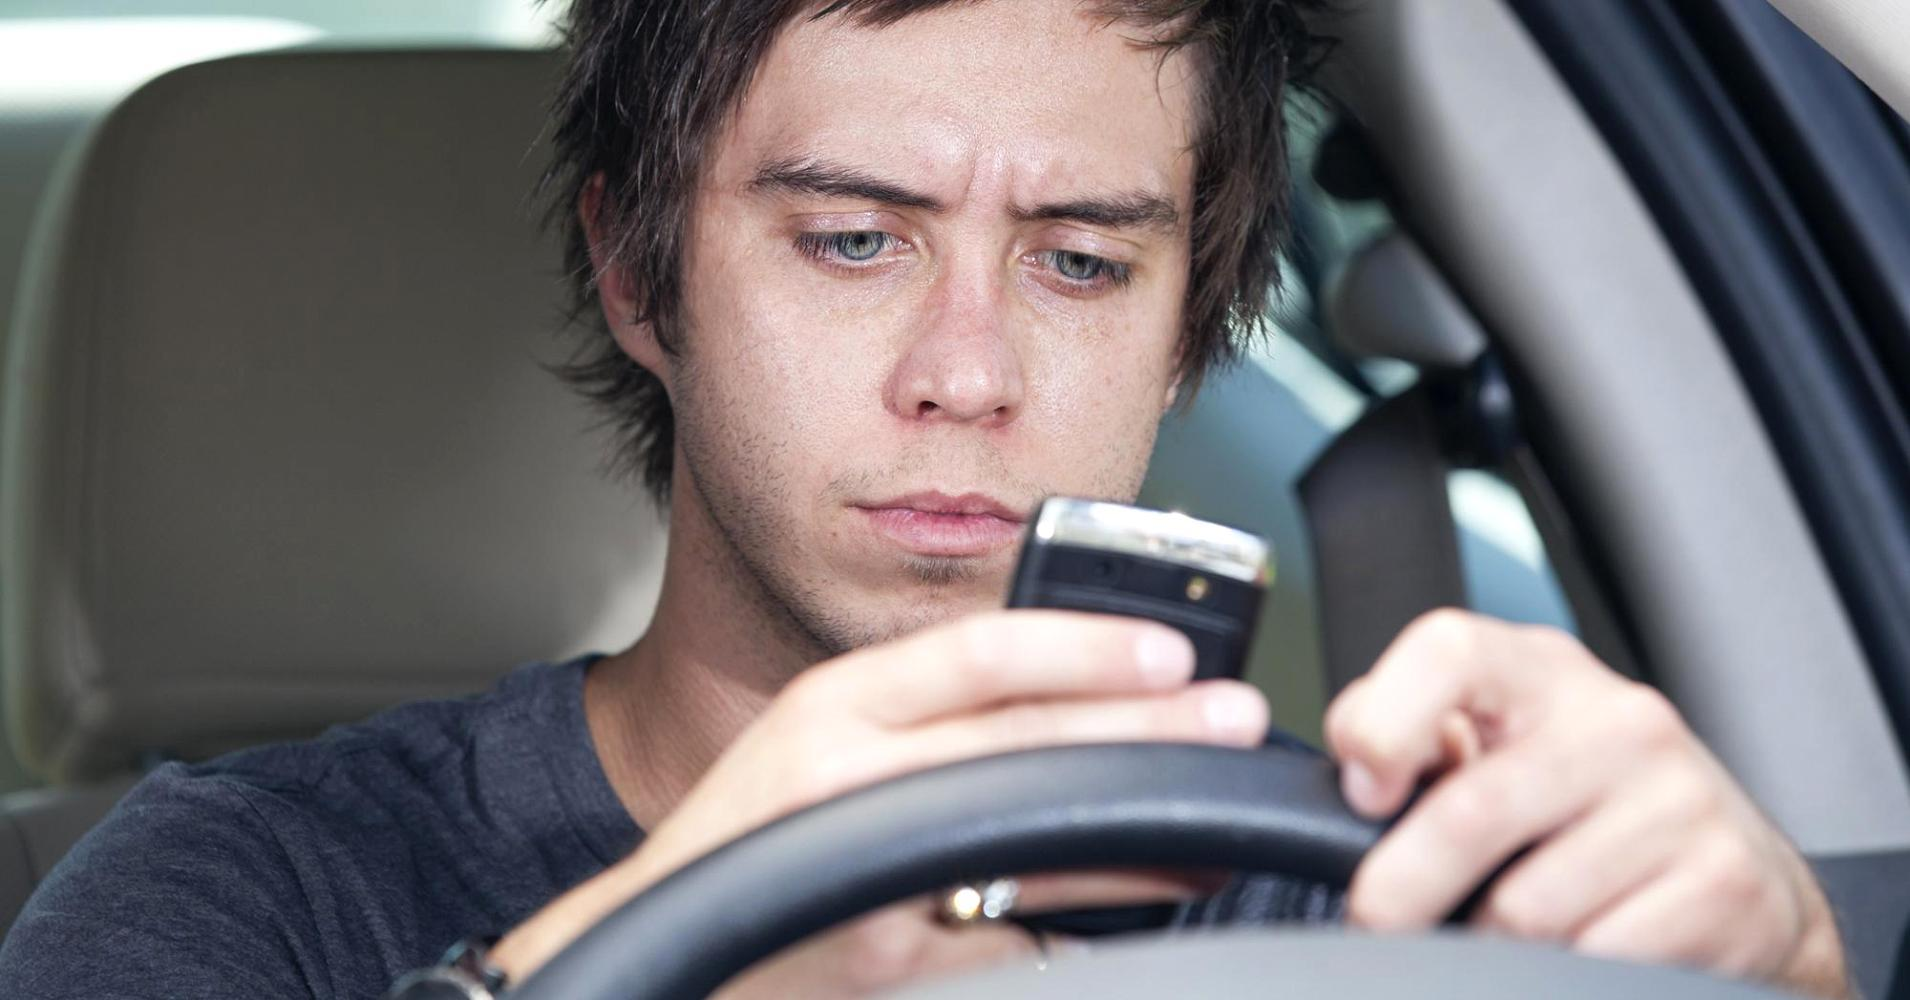 6 in 10 teen crashes involve distracted driving